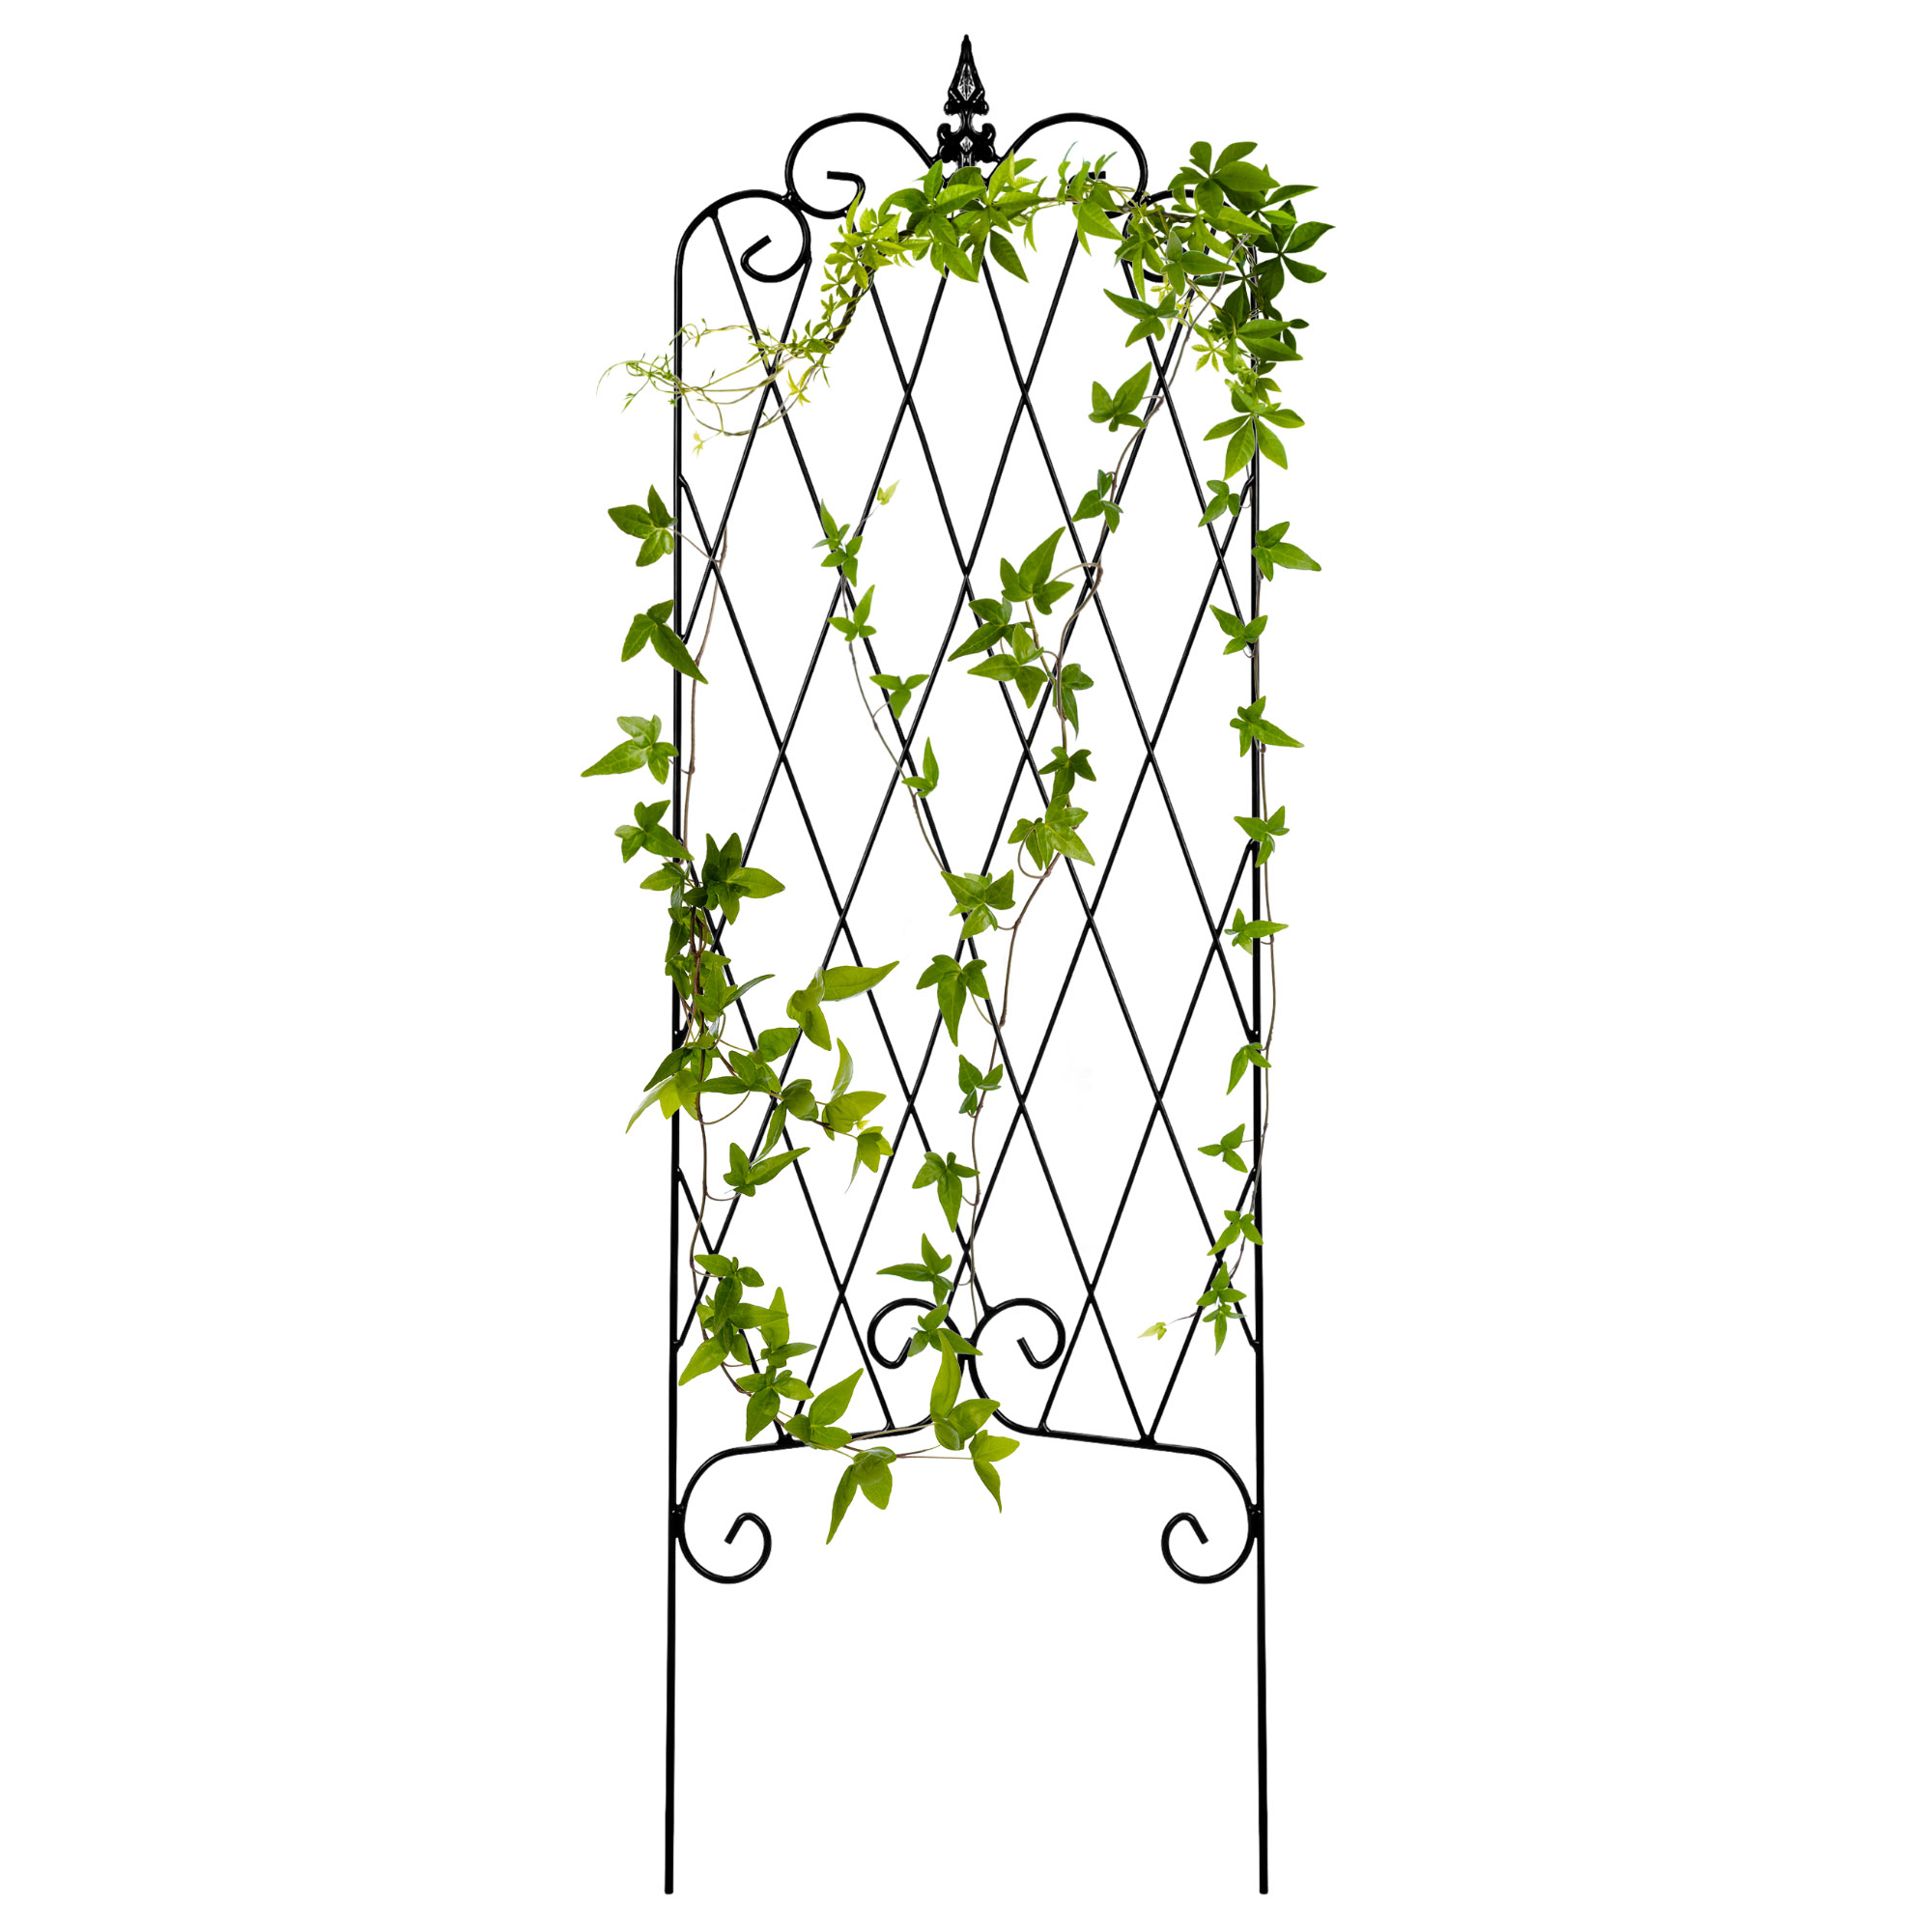 Best Choice Products 46x15in Rustproof Iron Lattice Garden Trellis Fence Panel for Climbing Plants w/ Finial - Black